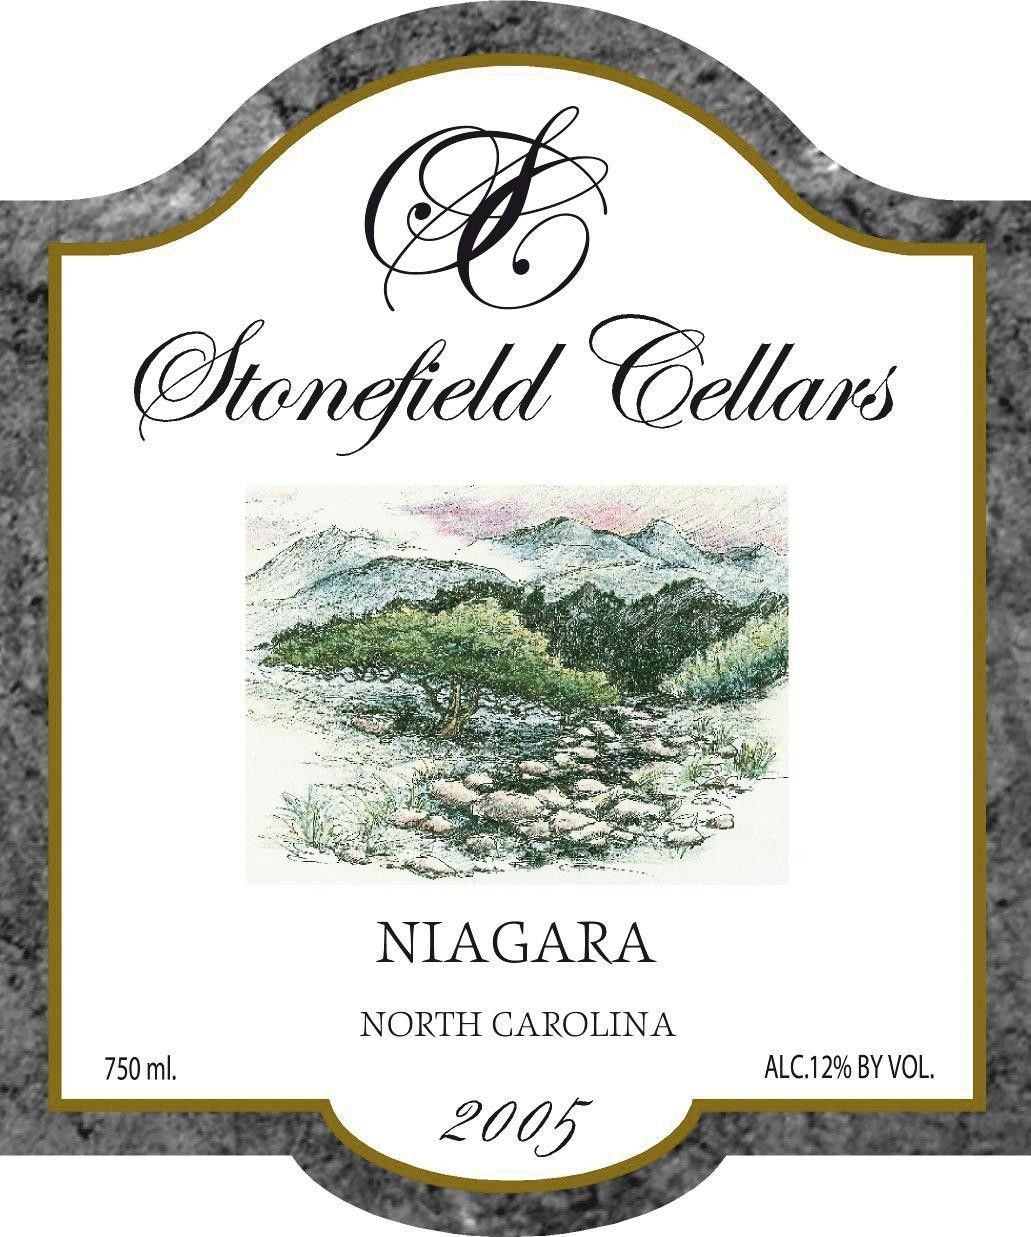 Stonefield Cellars Niagara 2005 Front Label